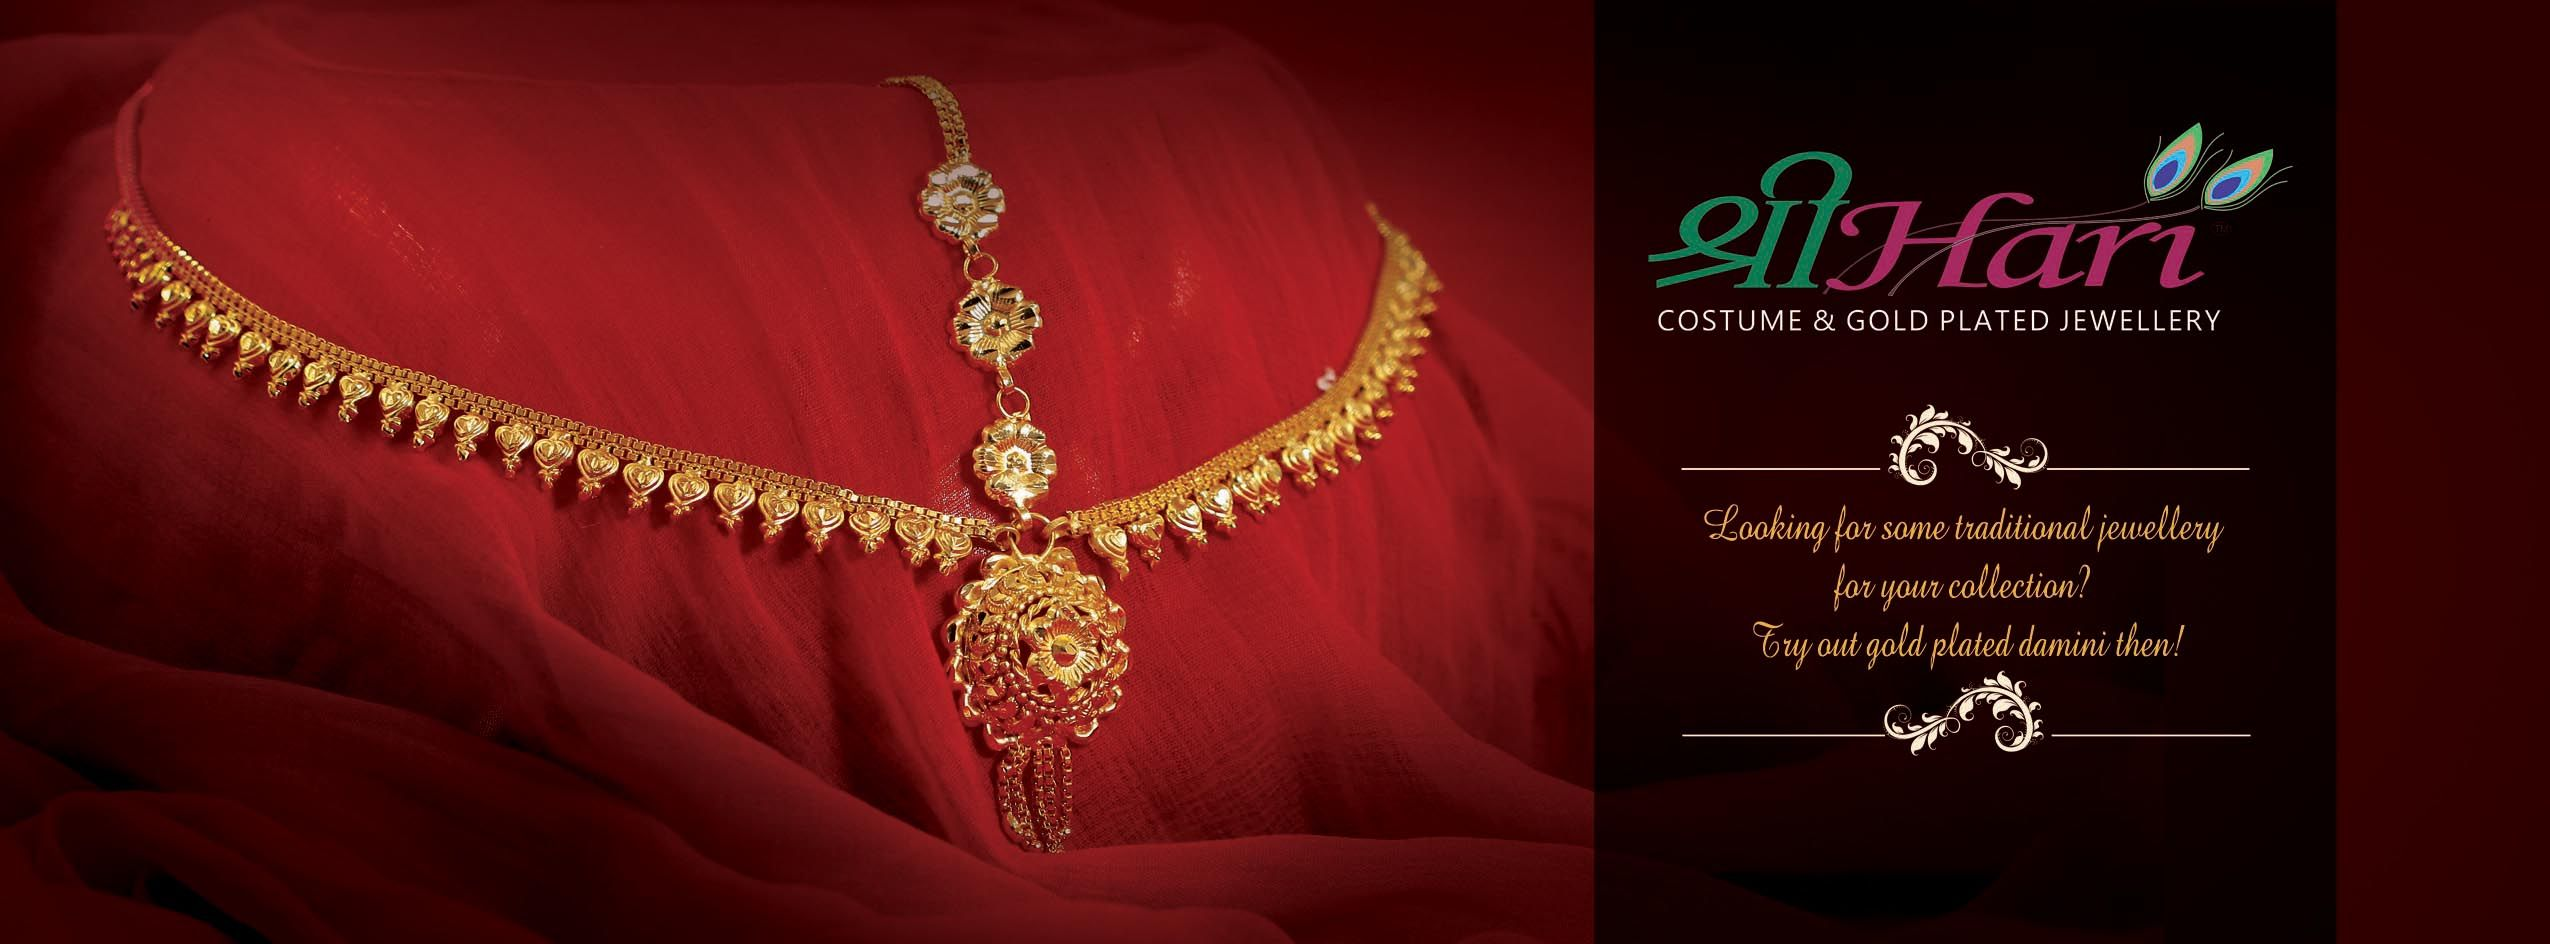 Looking for some traditional jewellery for your collection Try